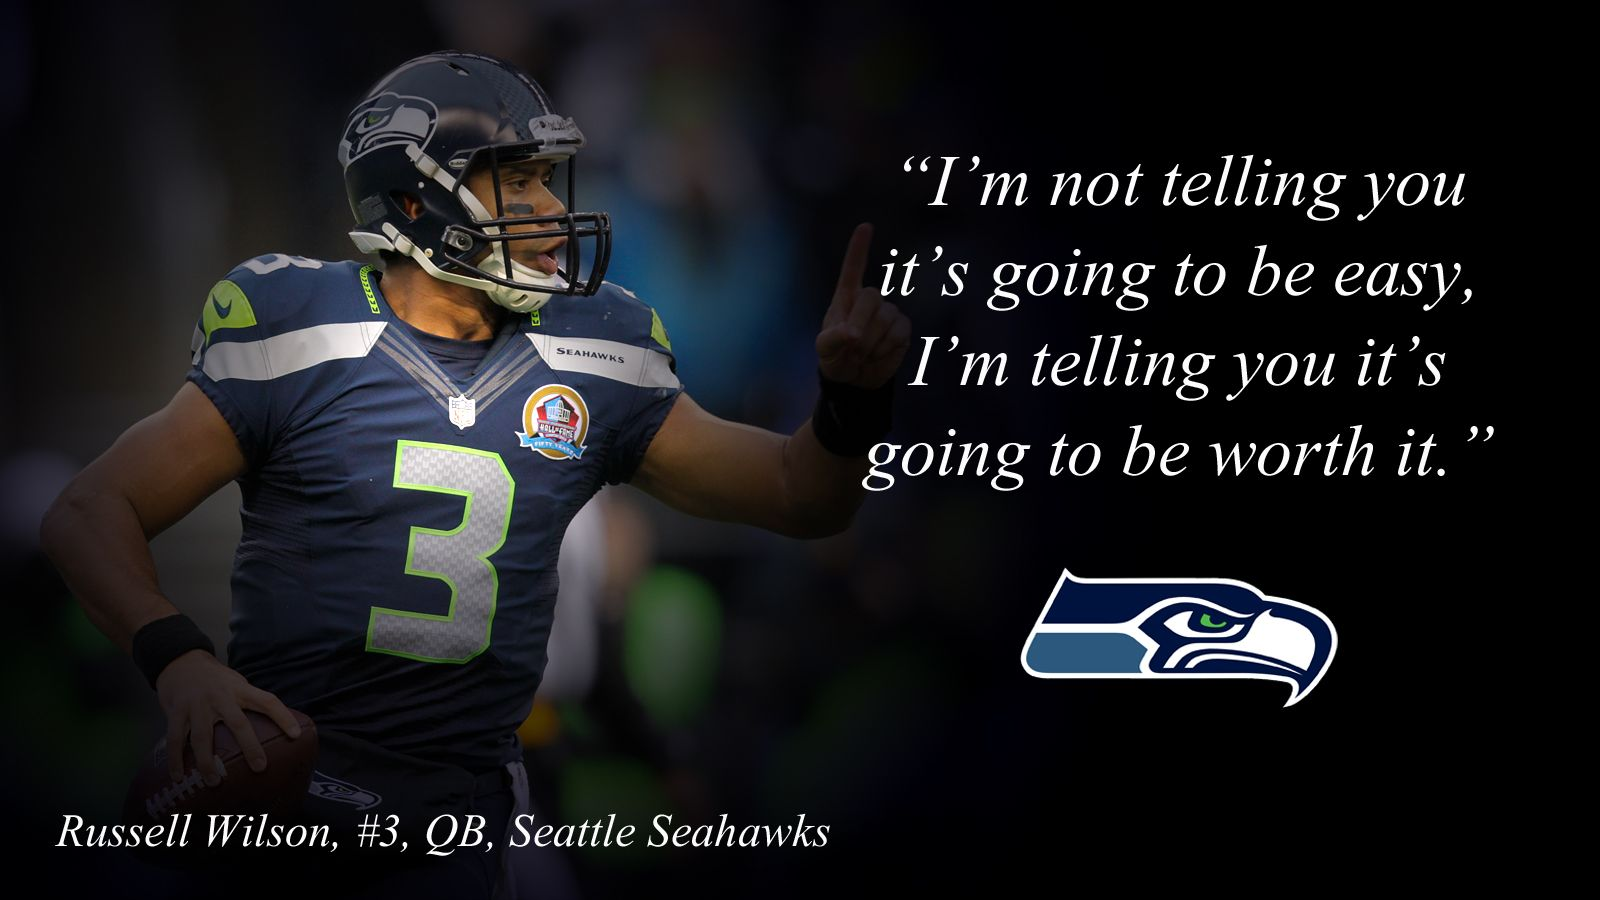 Russell Wilson Seahawks Wallpaper Russell Wilson By Jason284 Wallpaper Page At Deviantart 1600 Seattle Seahawks Football Quotes Russell Wilson